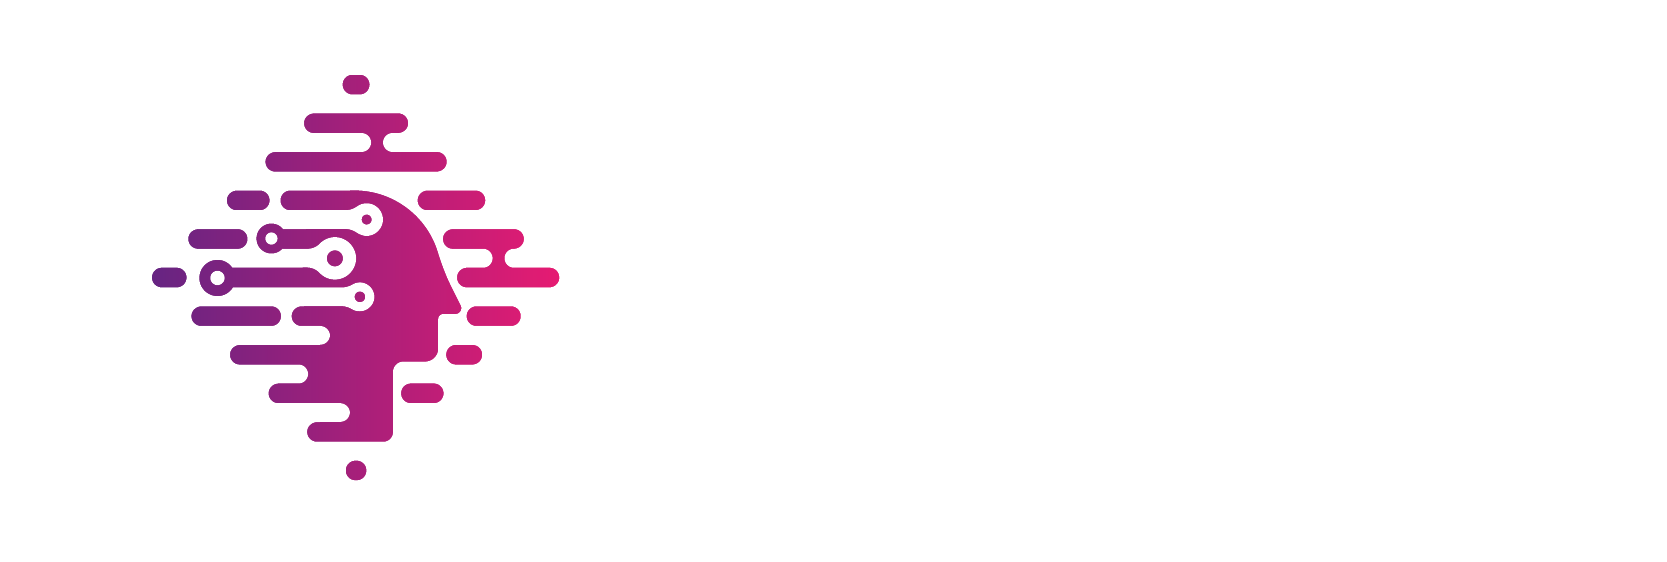 Digital Notion